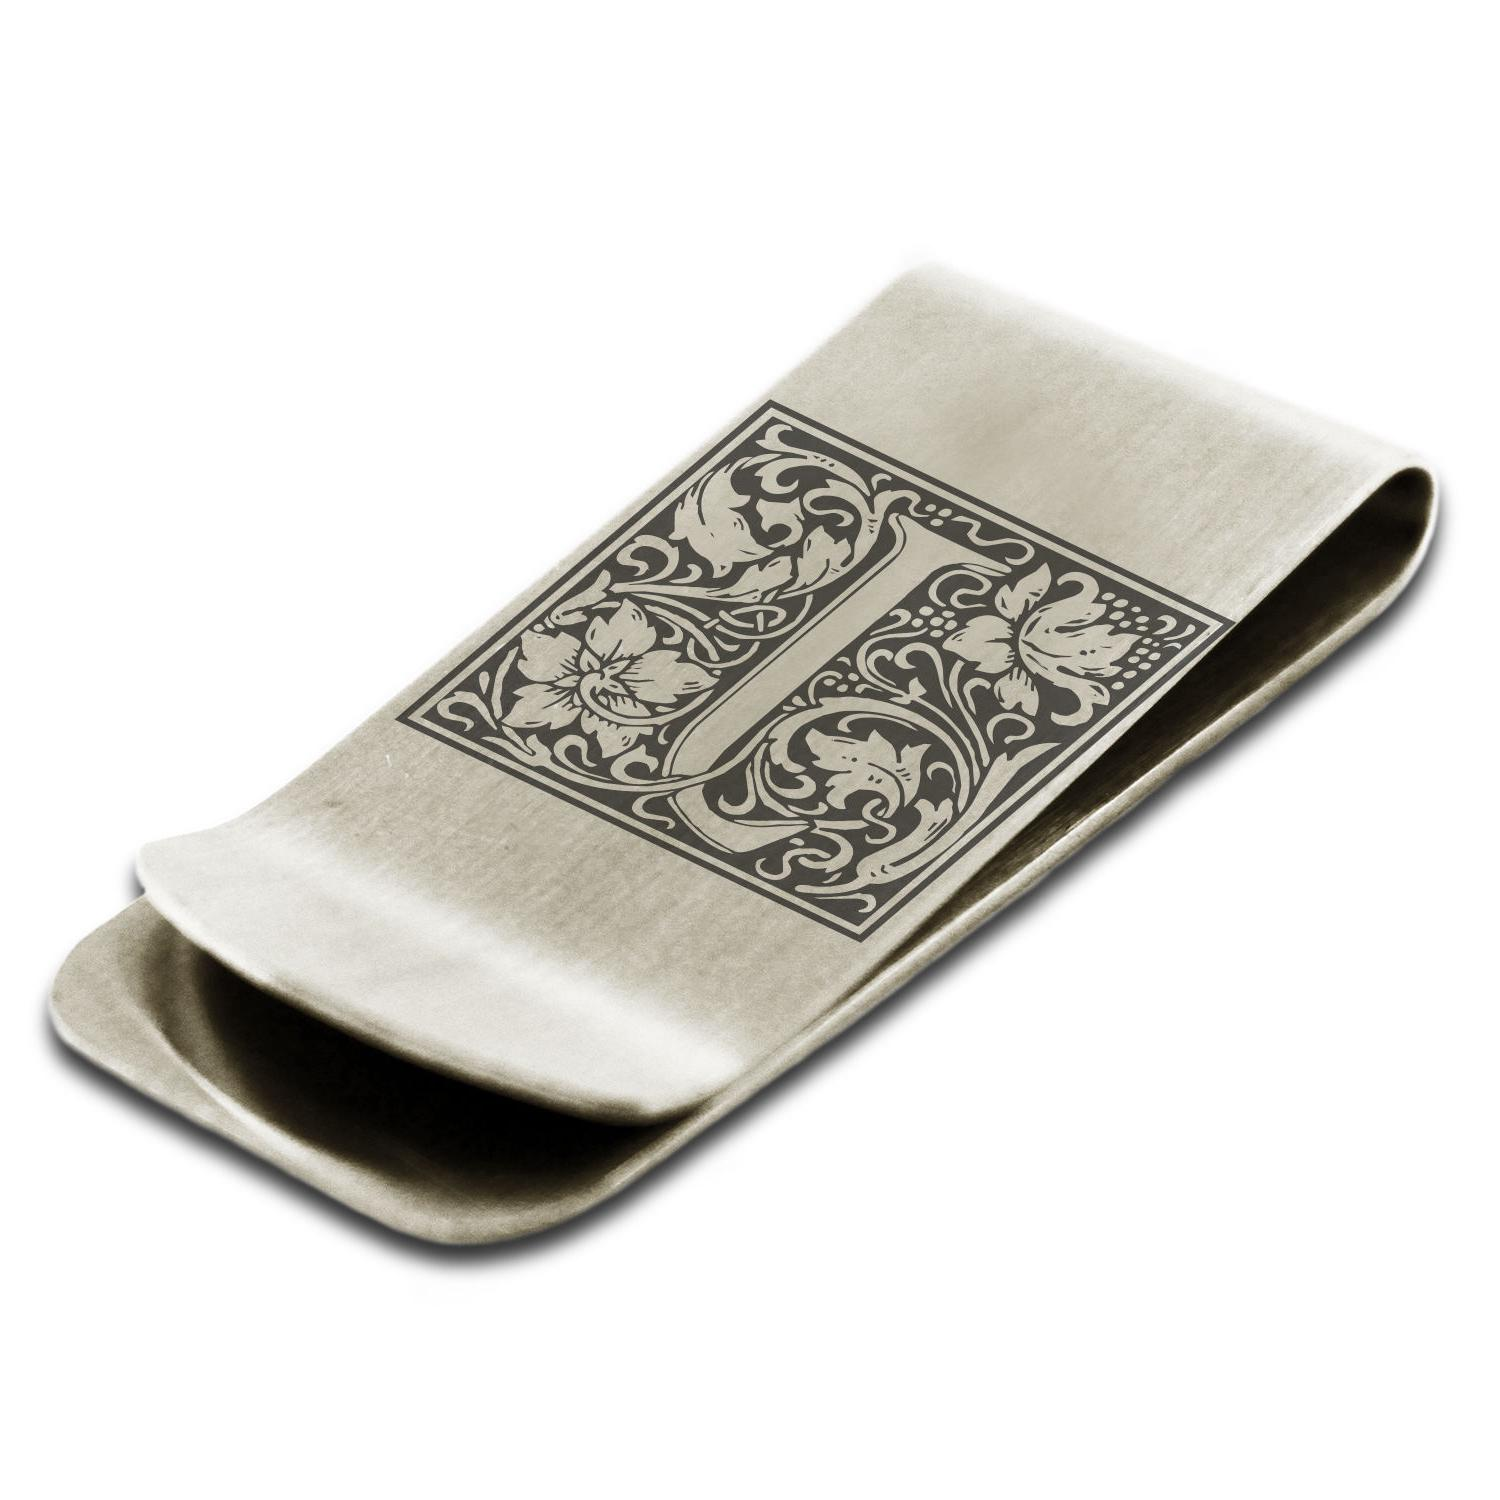 Stainless Steel Floral Box Monogram Slim Wallet Cash Card Ho